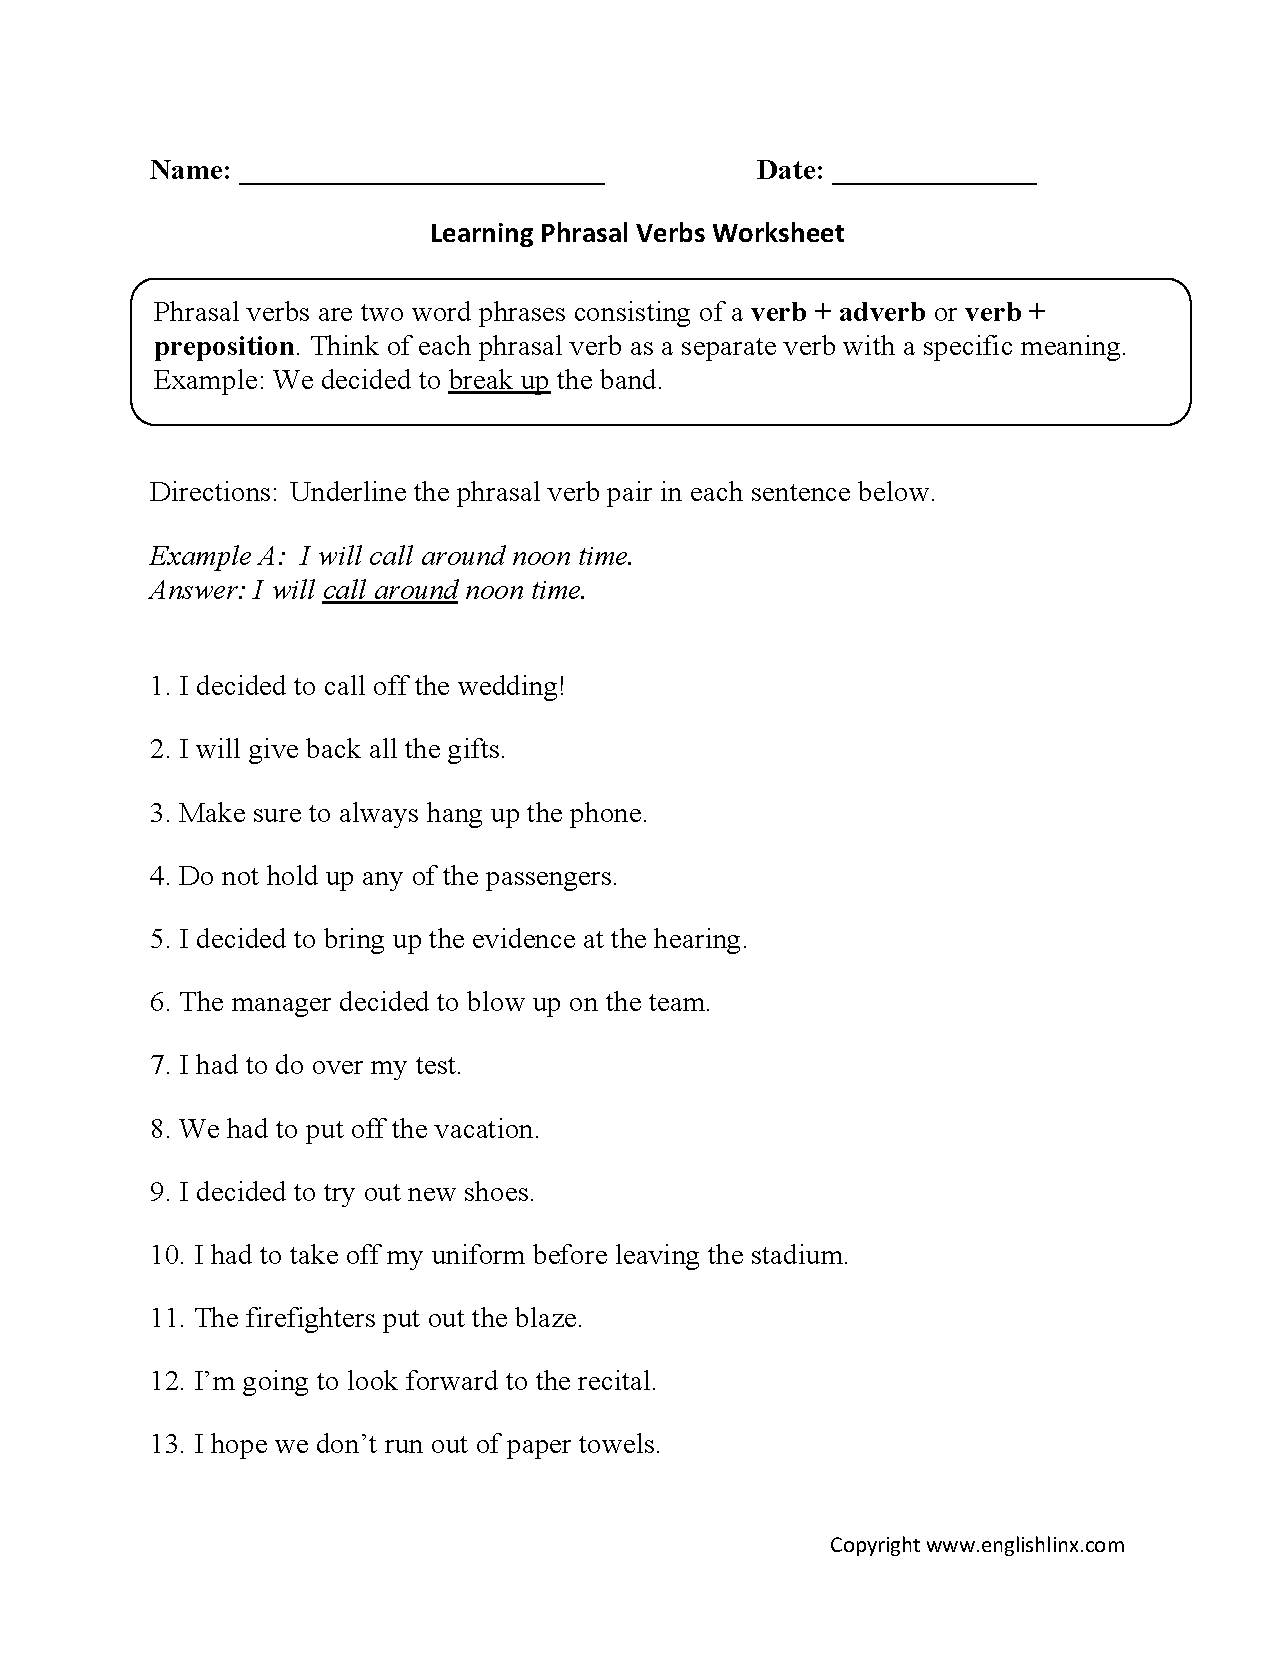 Free Worksheet Irregular Verbs Worksheet englishlinx com verbs worksheets phrasal worksheets